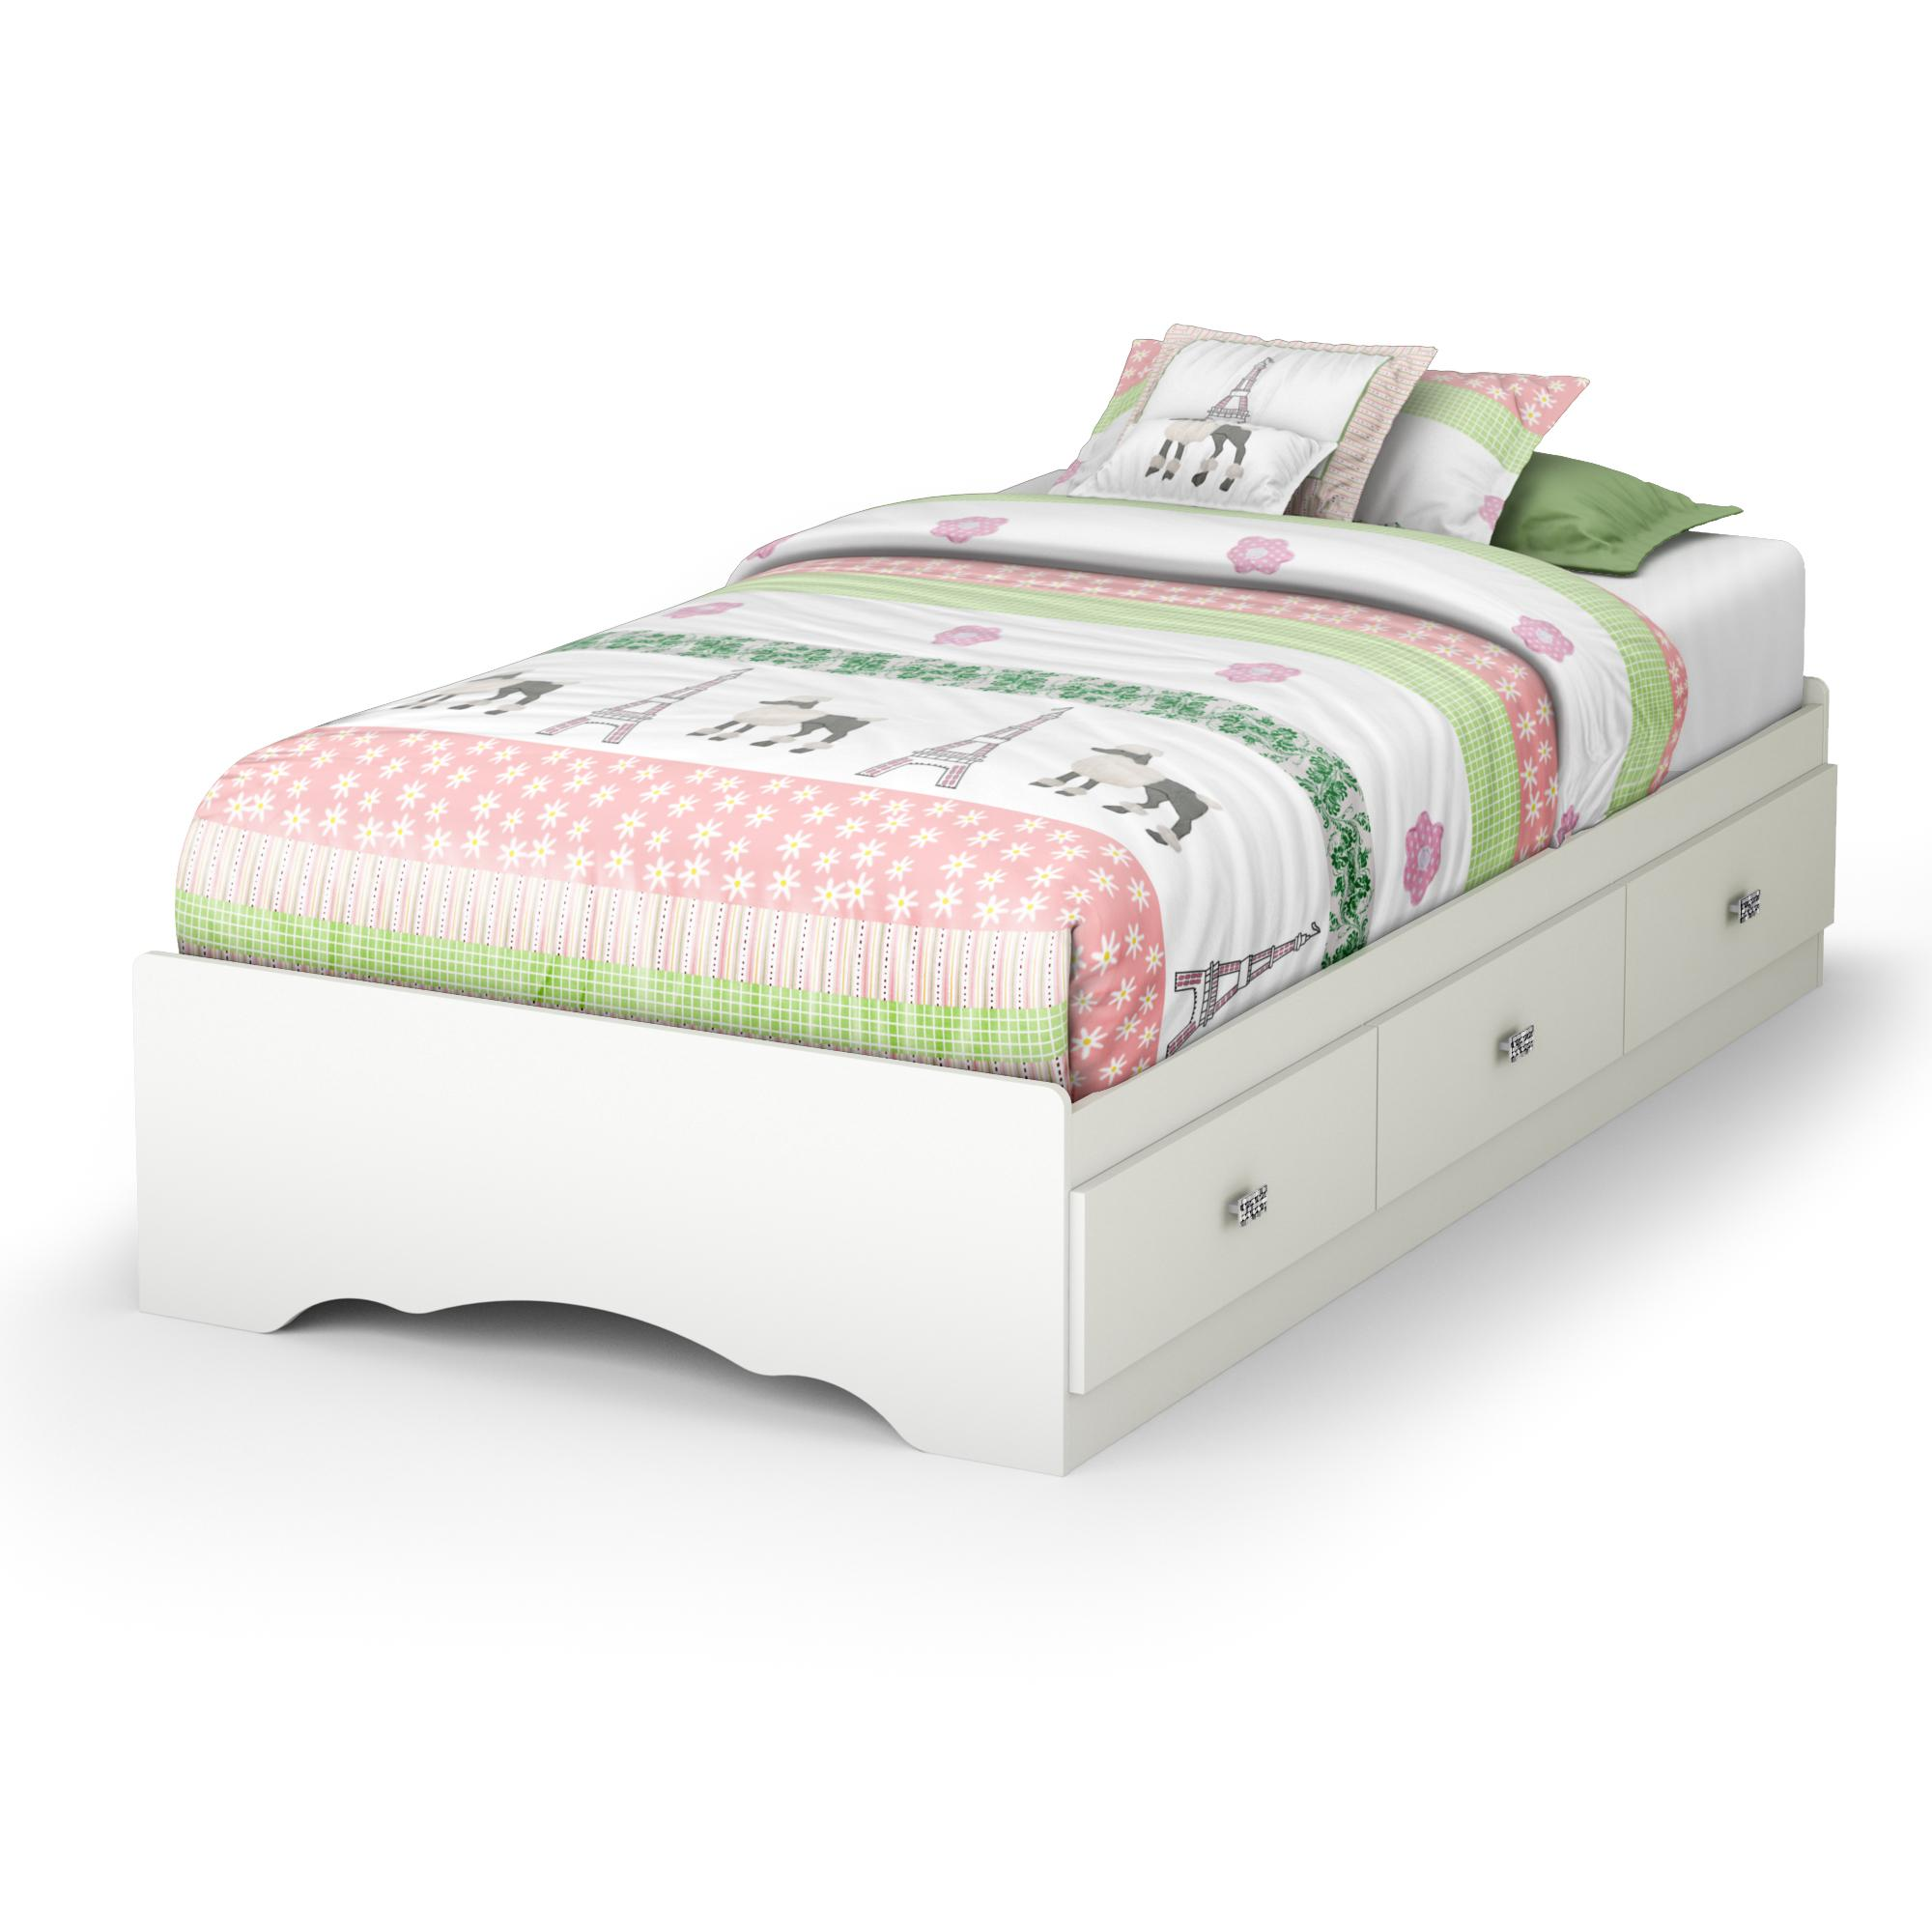 South Shore Tiara Twin Mates Bed 39 By Oj Commerce 3650212